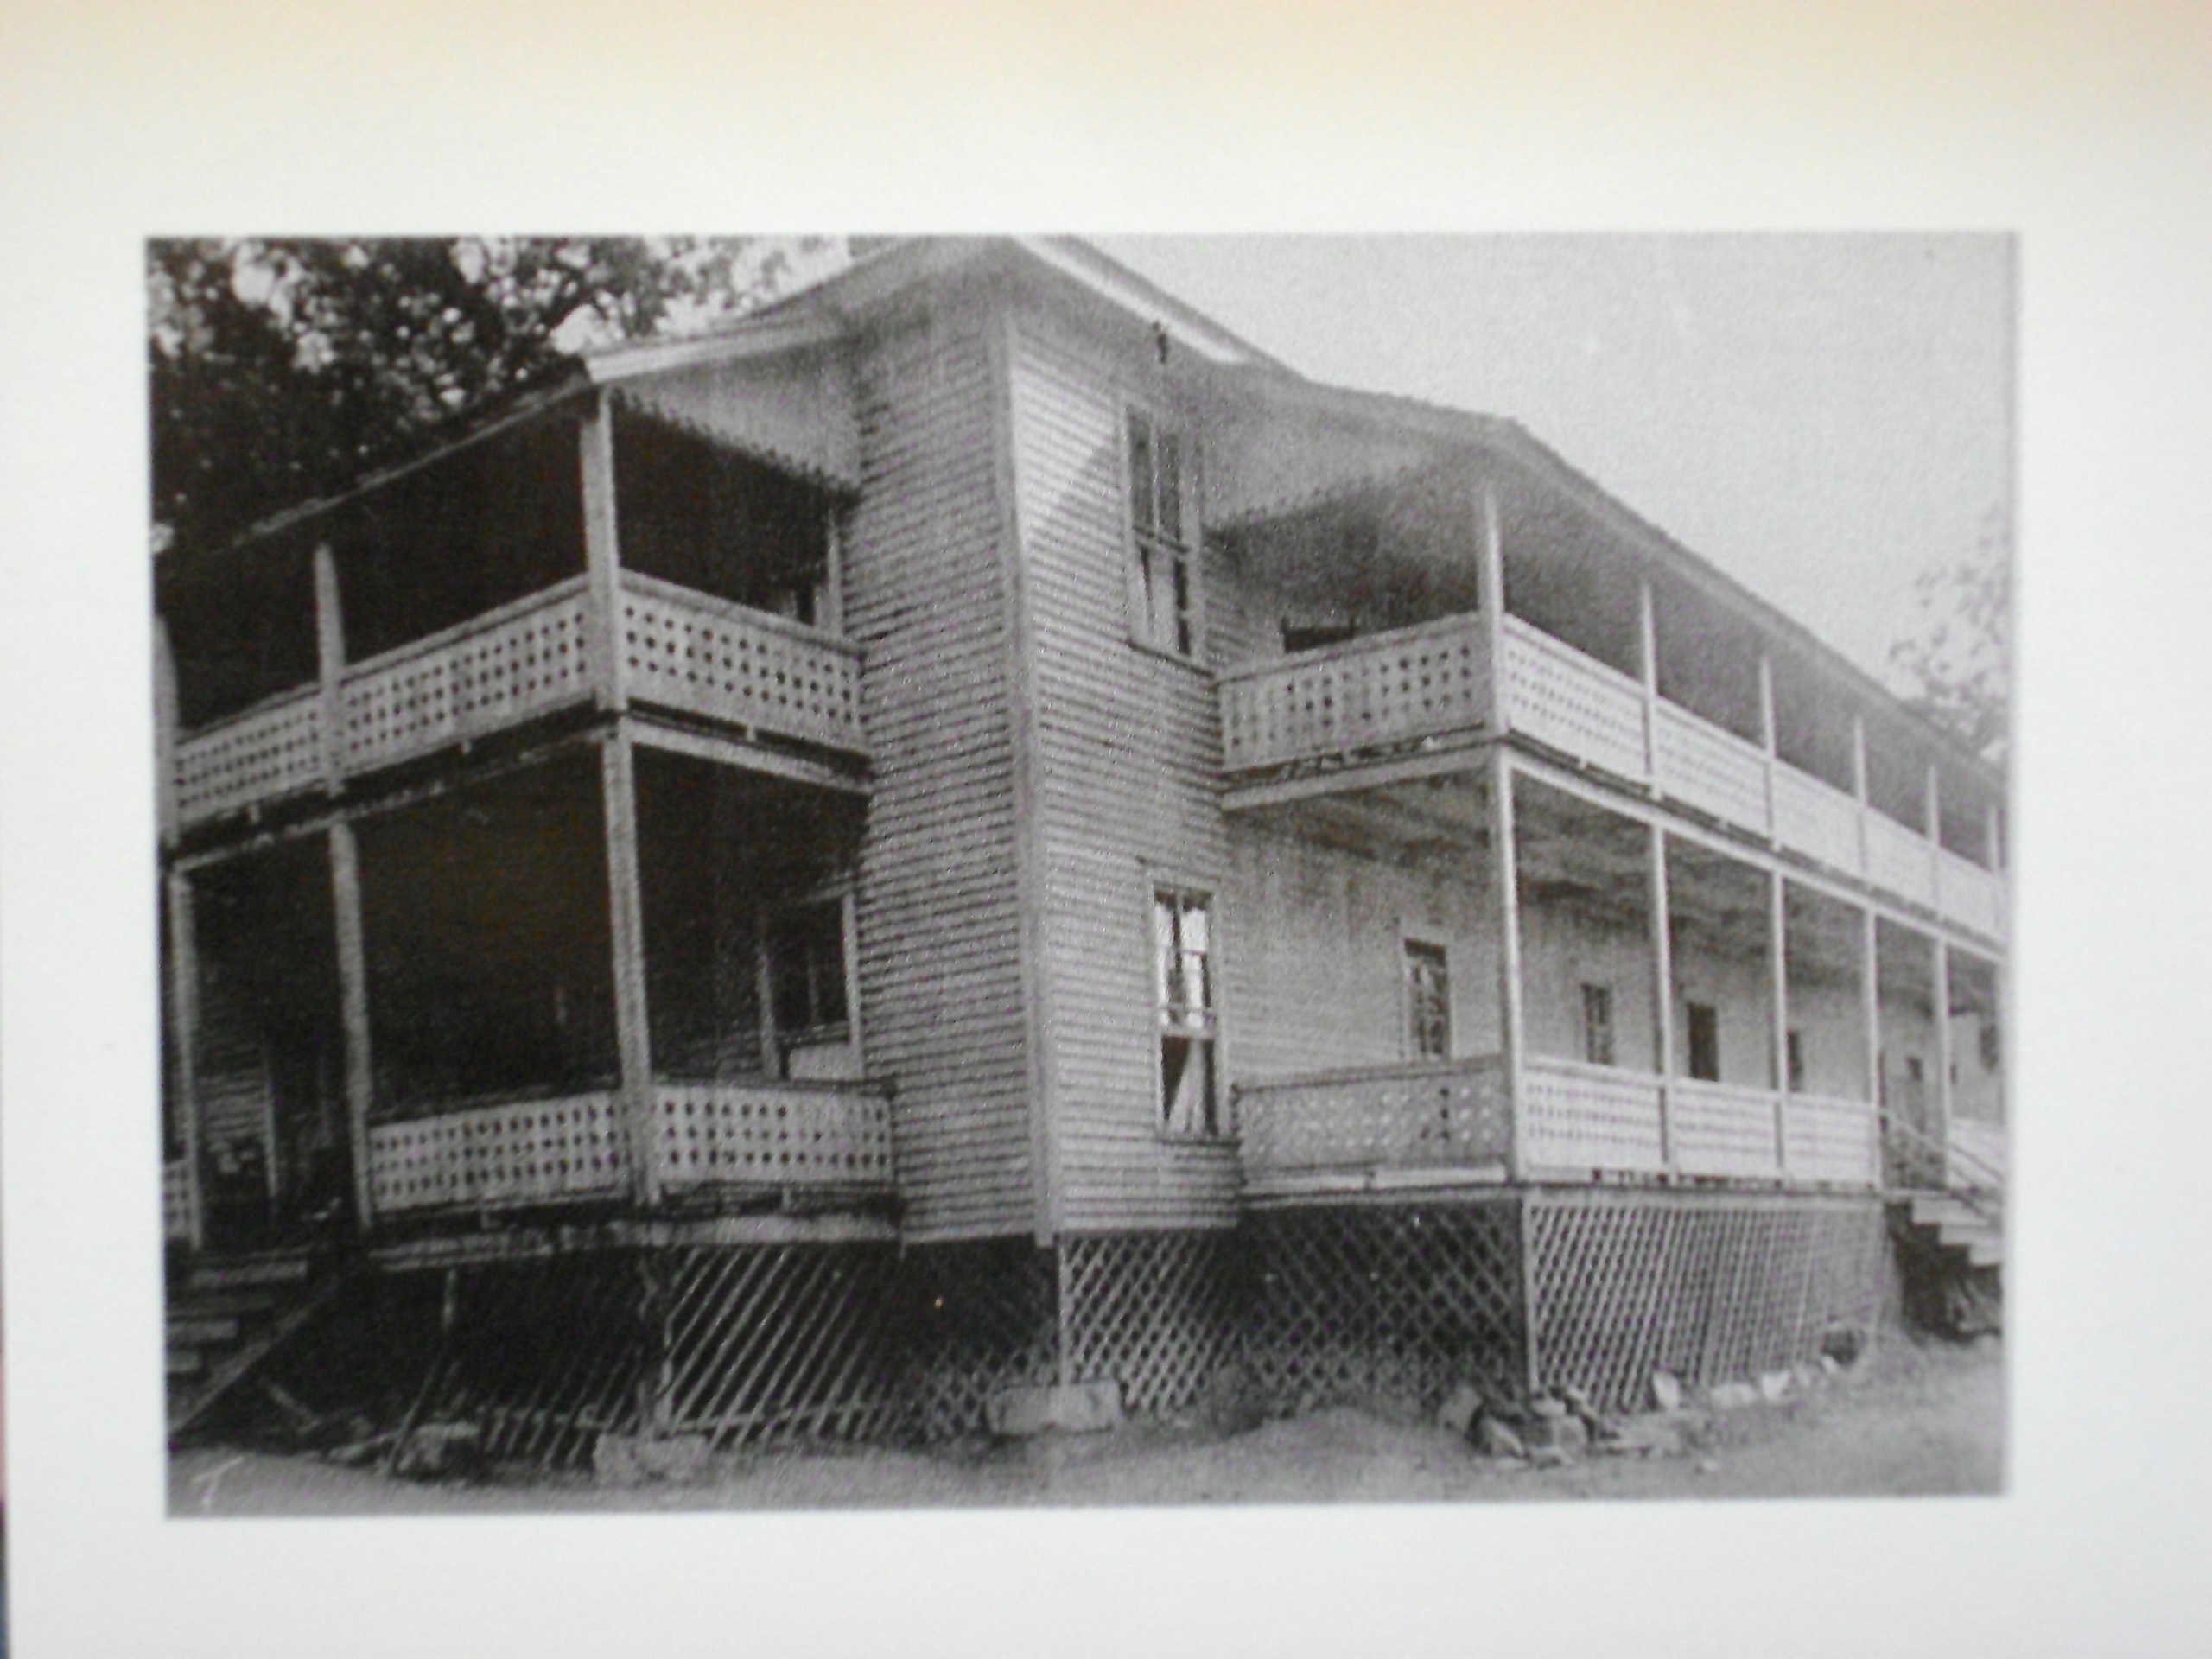 2nd photo of hotel